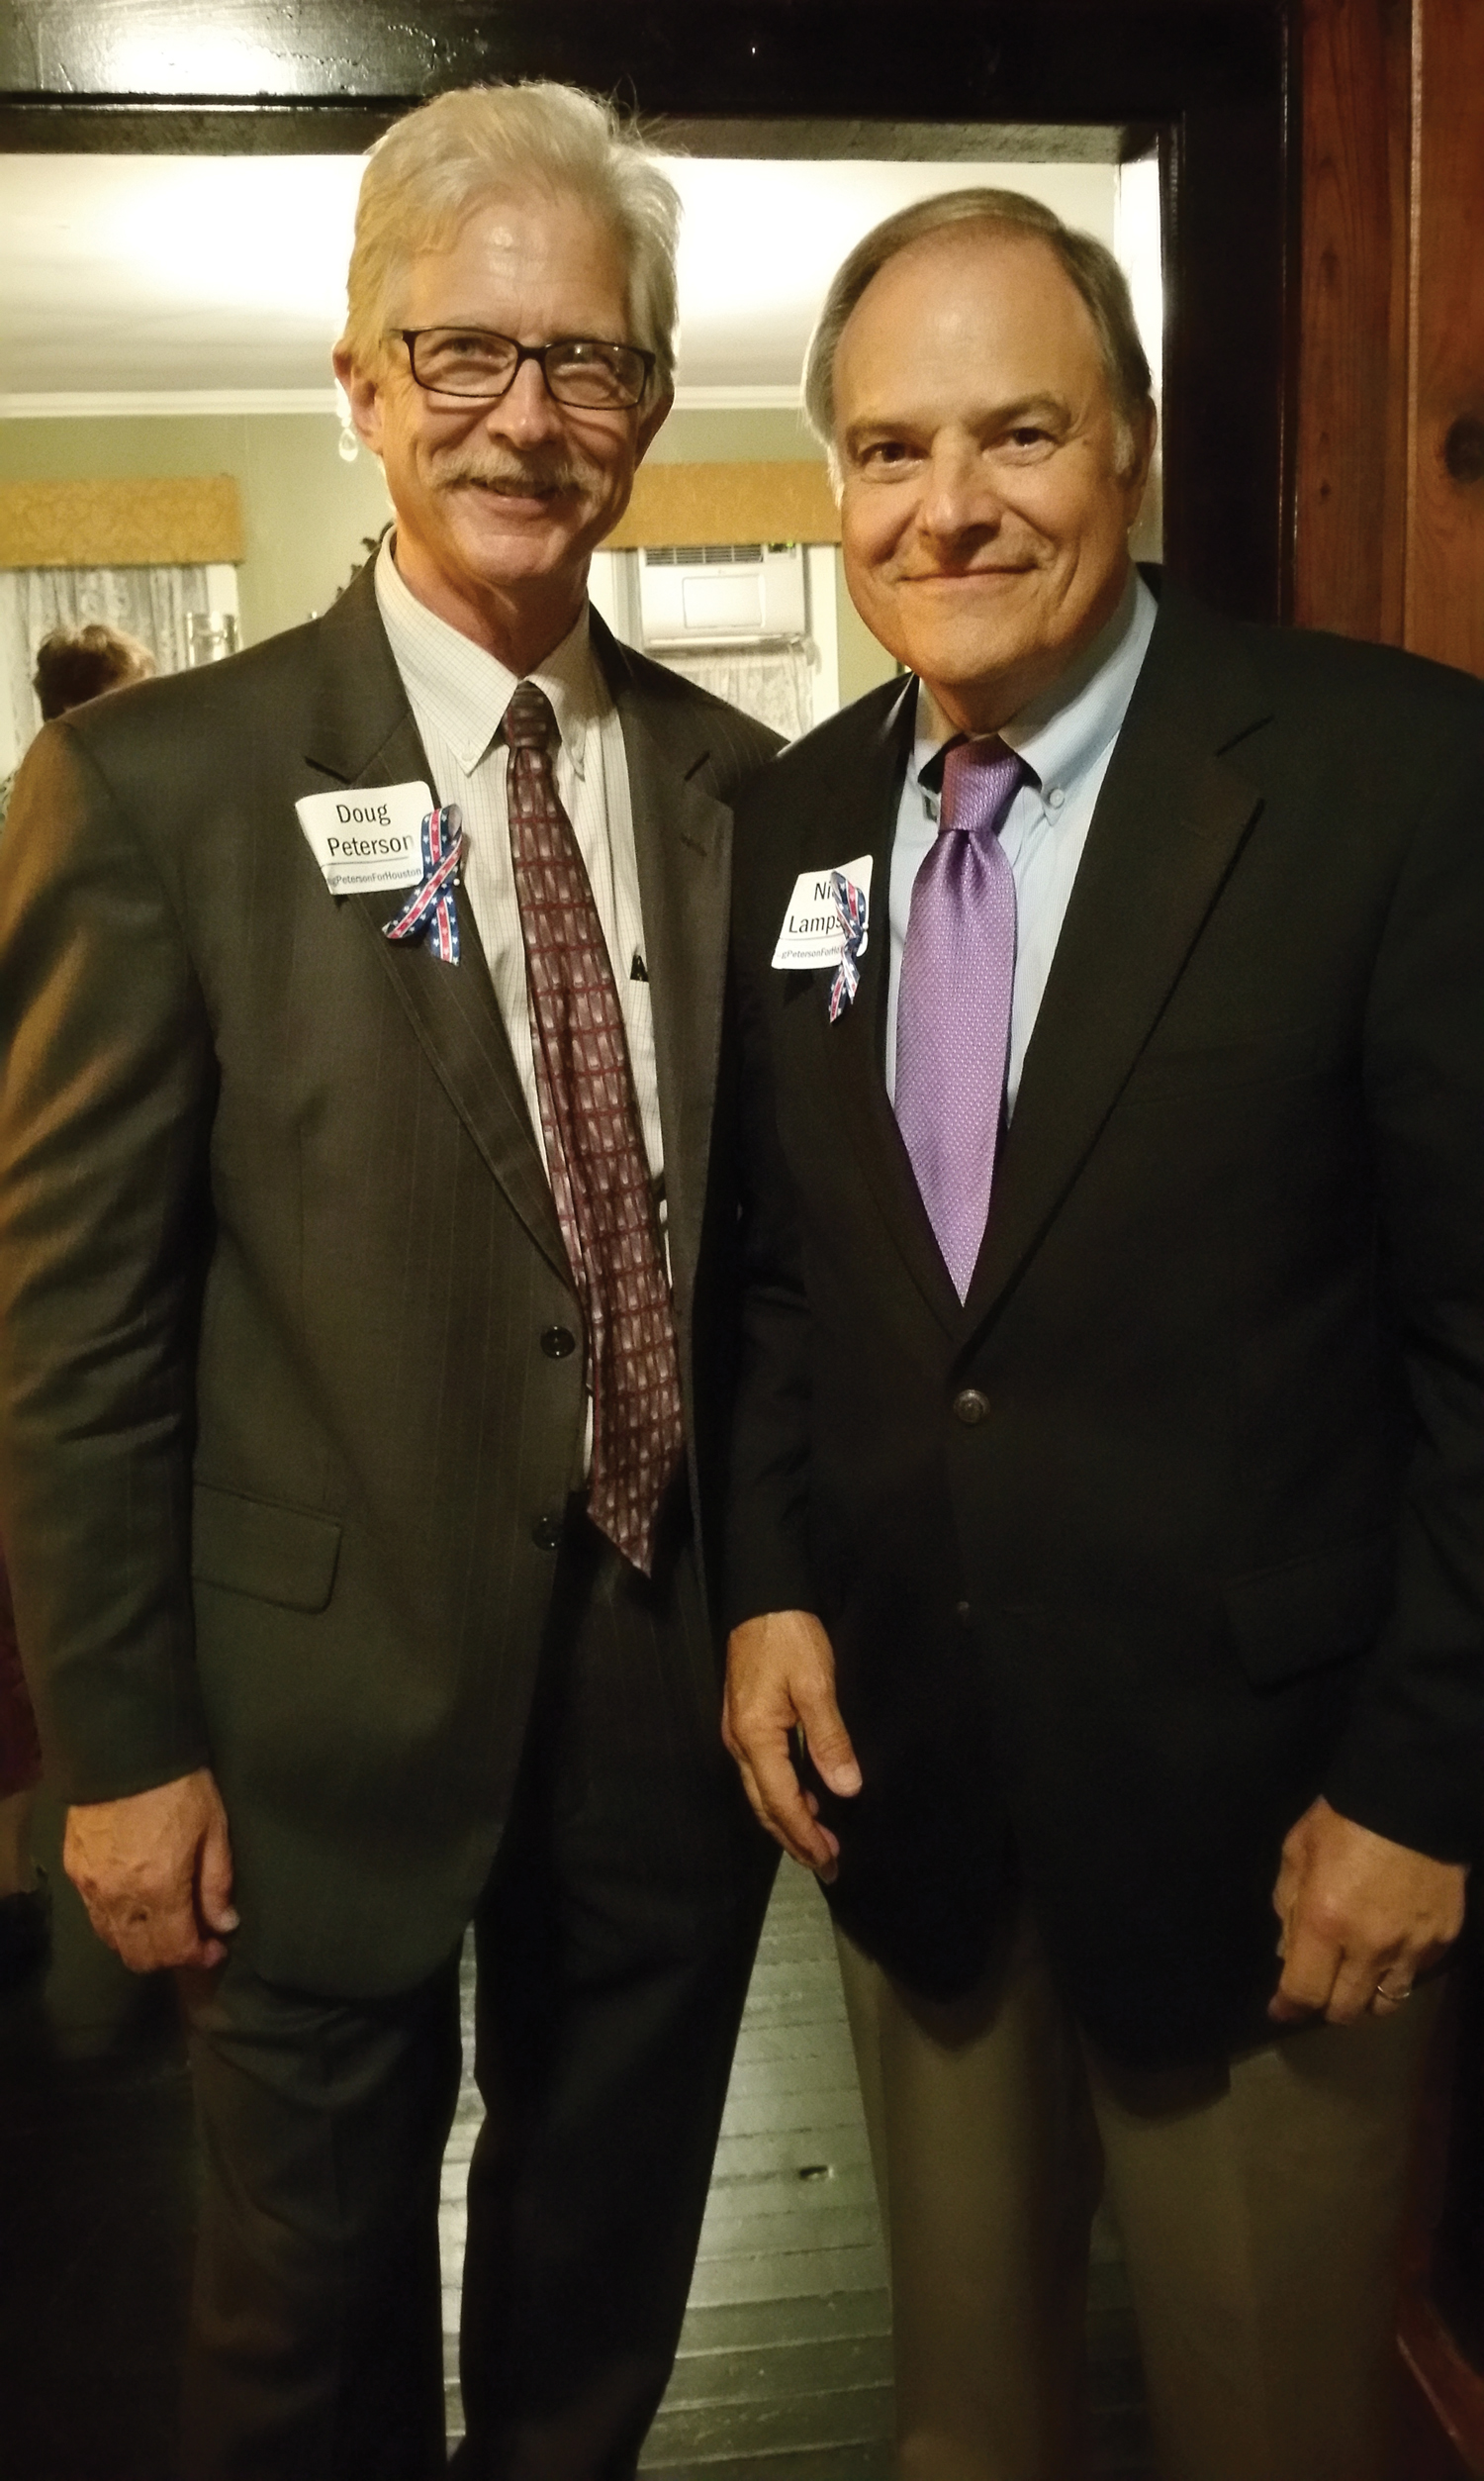 Doug Peterson, left, kicked off his campaign for Houston City Council At Large Position 3 Sept. 8 with former Congressman Nick Lampson on hand to wish him well. After years in NASA External Affairs, Peterson promised to work for all Houston, from Clear Lake up to Kingwood and from the east side to the west side.